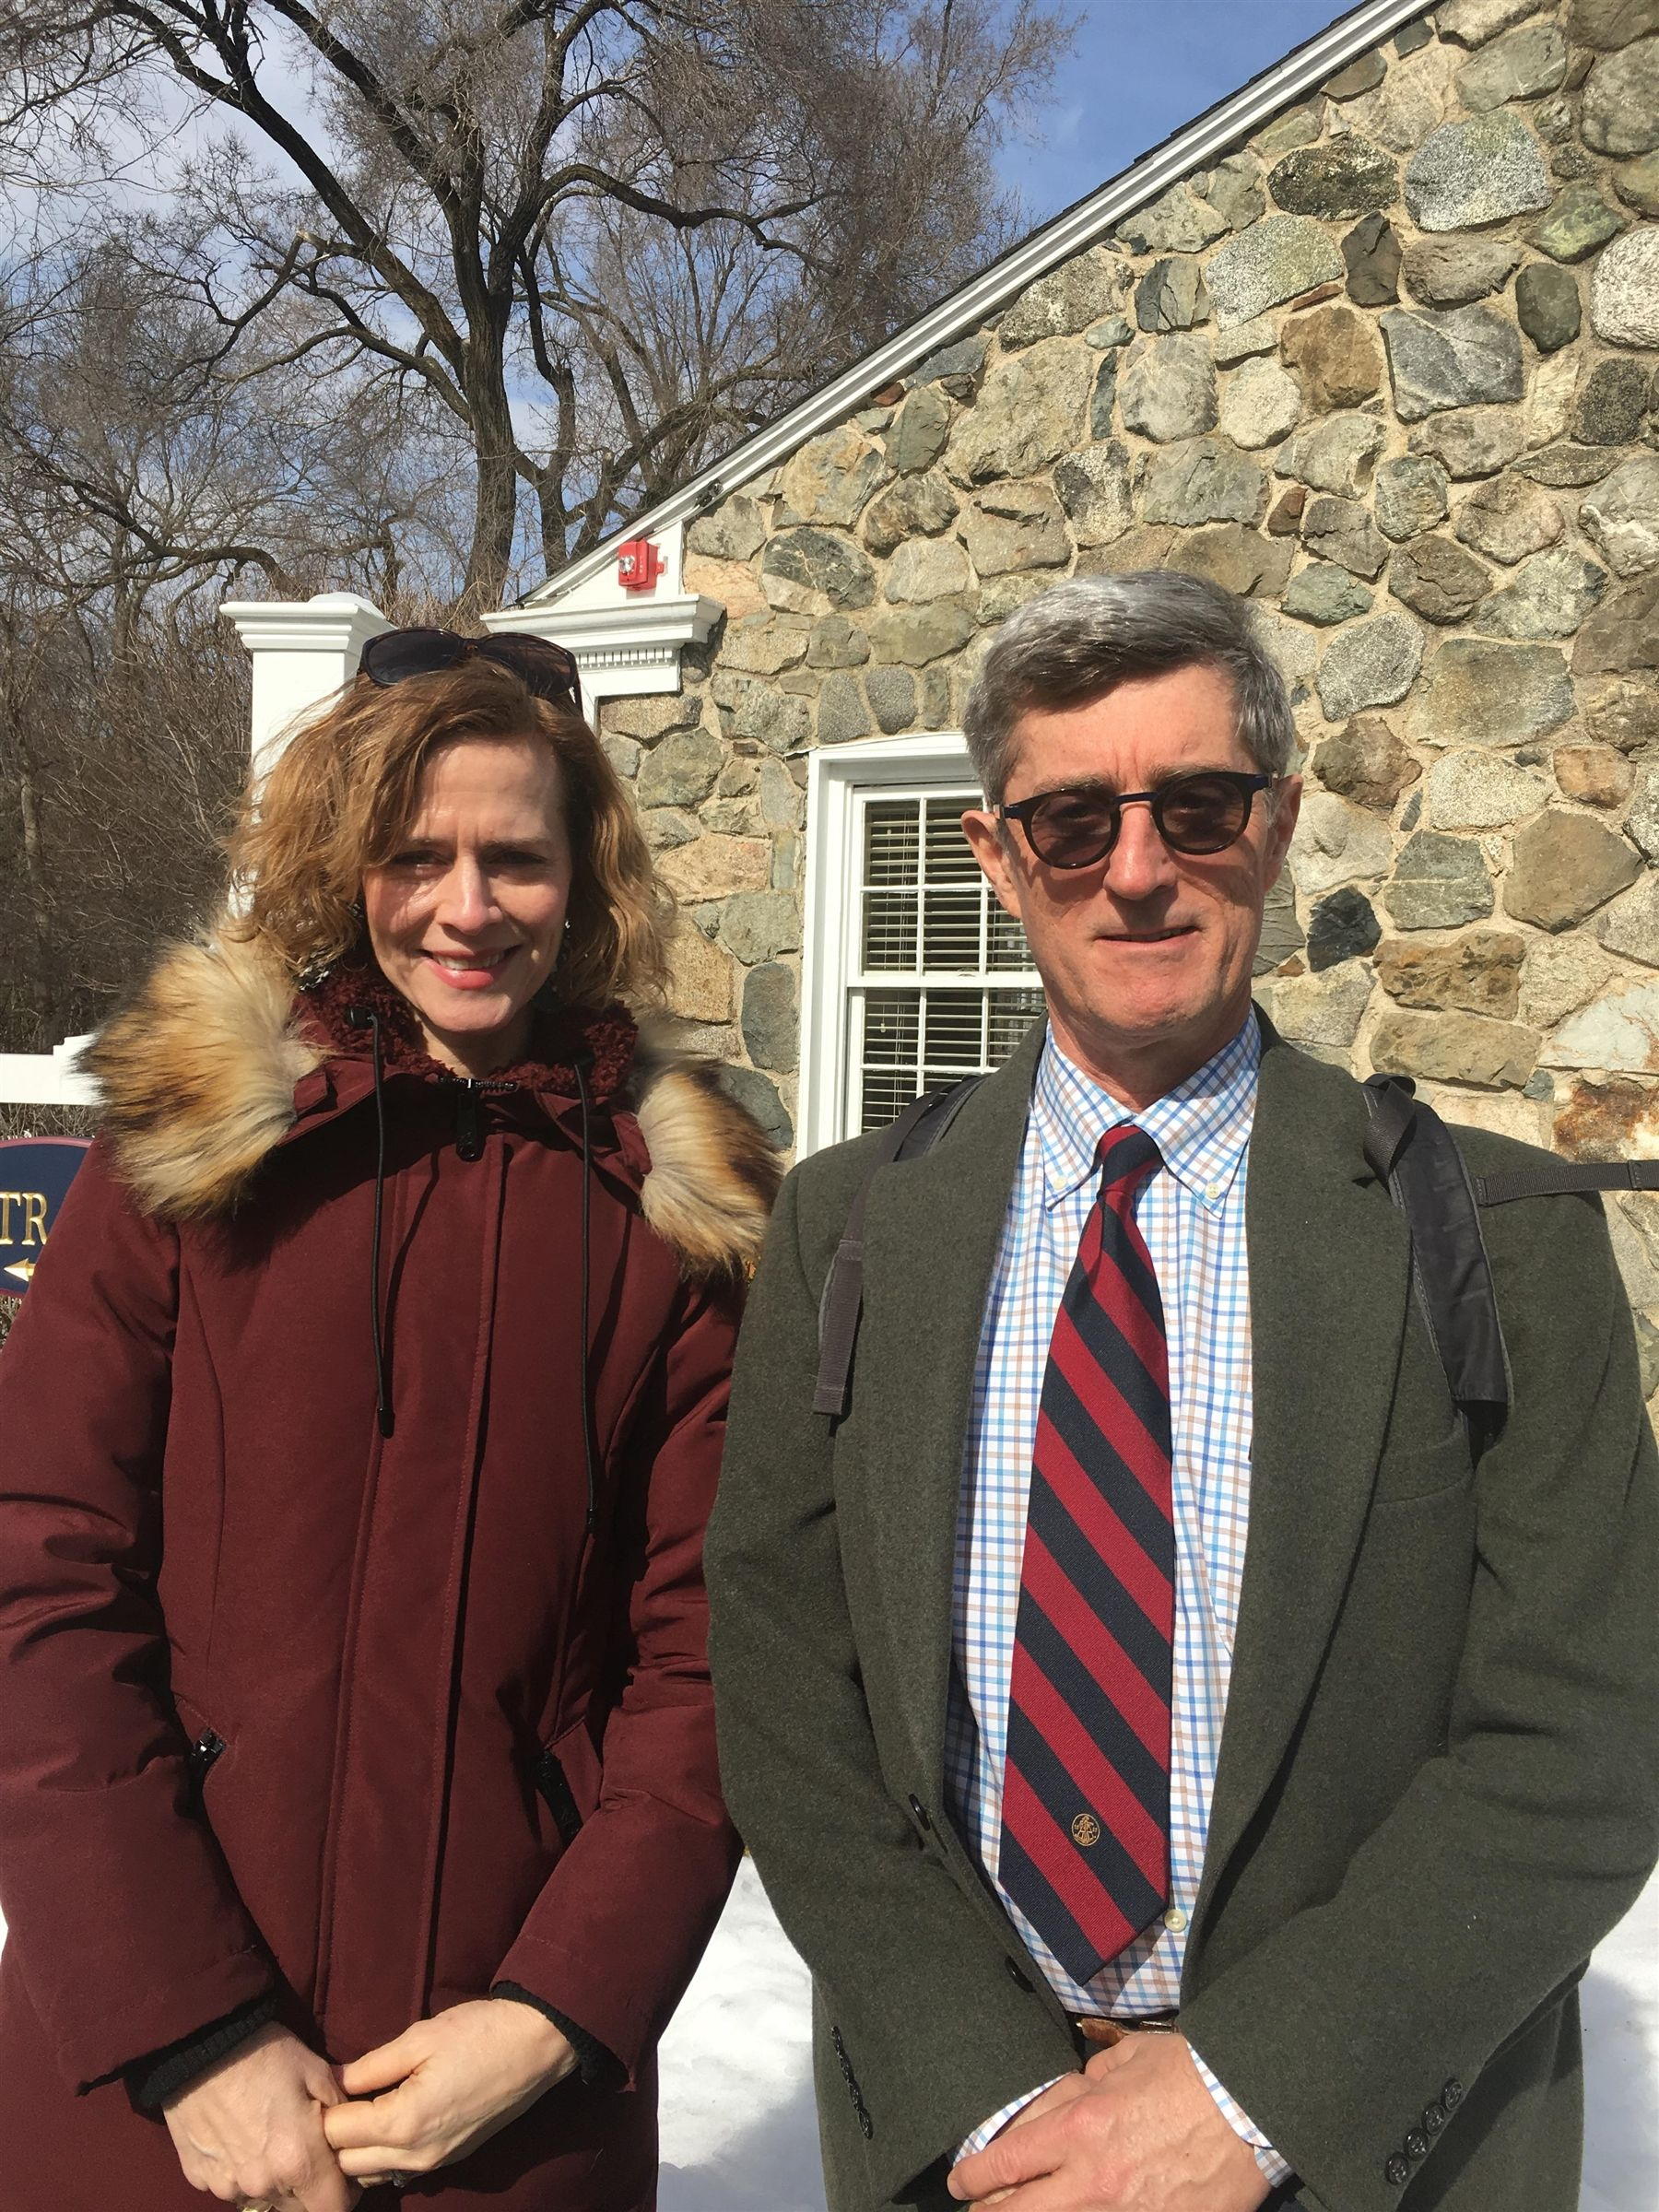 Len Edgerly '68  visit in February 2019 to Belmont Hill to teach a class on podcasts with Jeanne Tift.